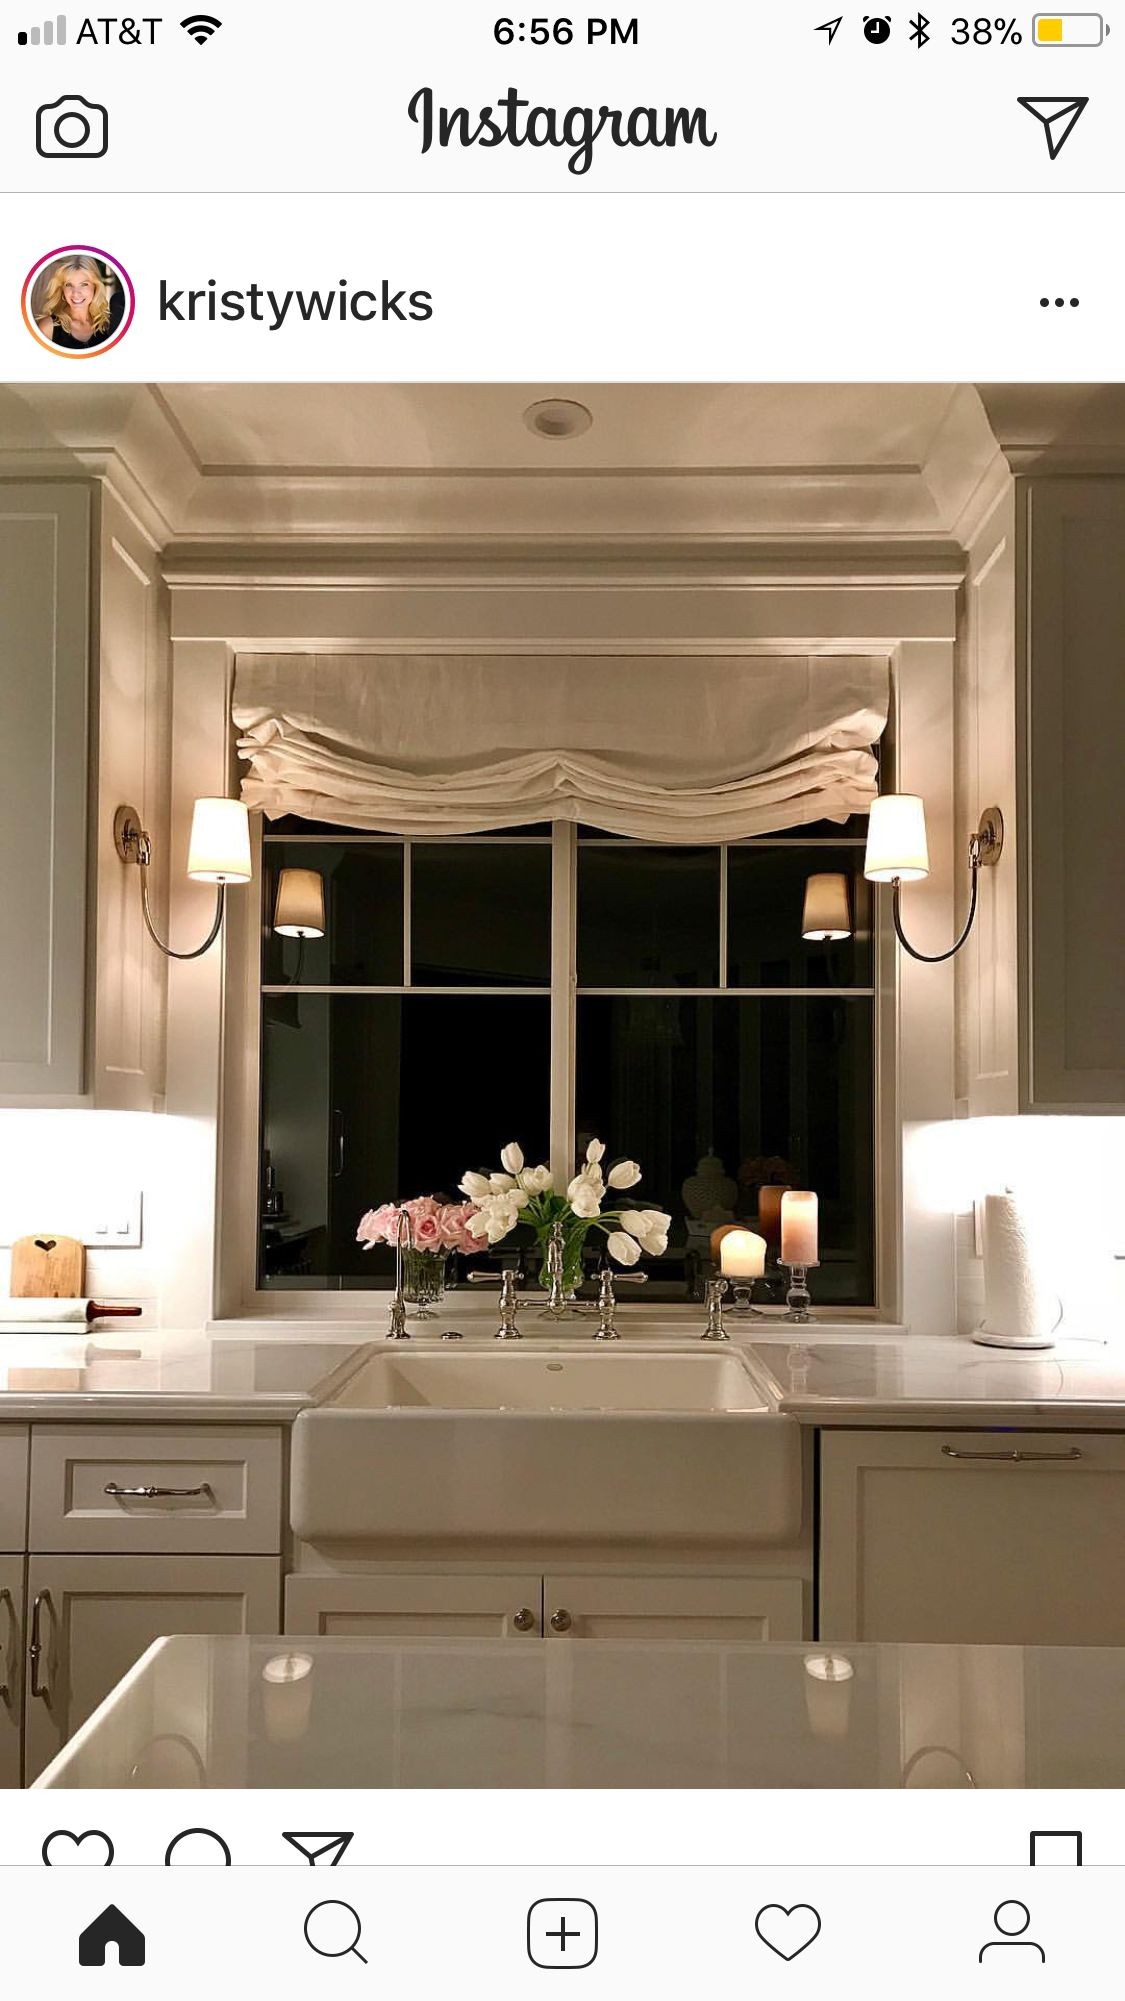 Kitchen window without sill  pin by luxury lifestyles on kitchen  pinterest